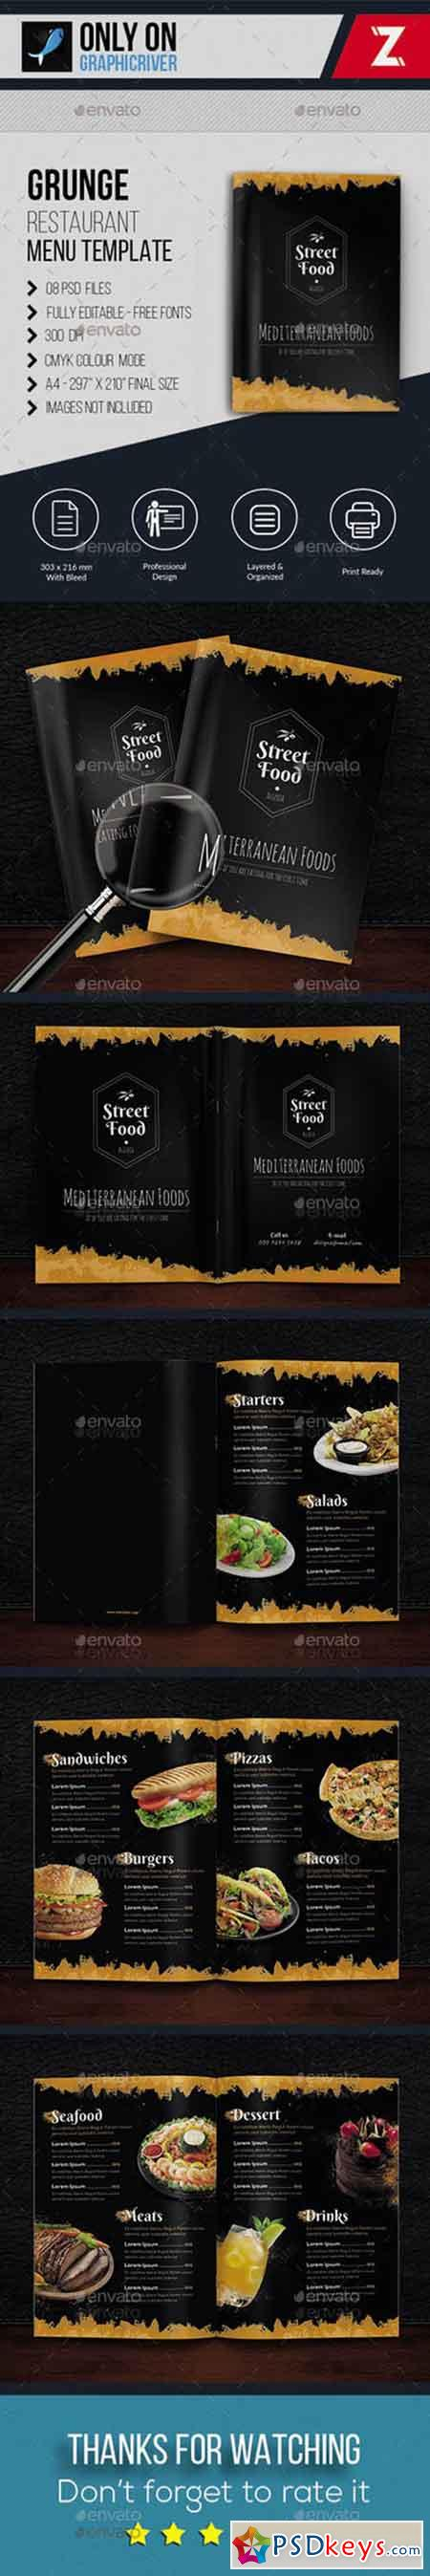 Grunge Restaurant Menu Template 20259204